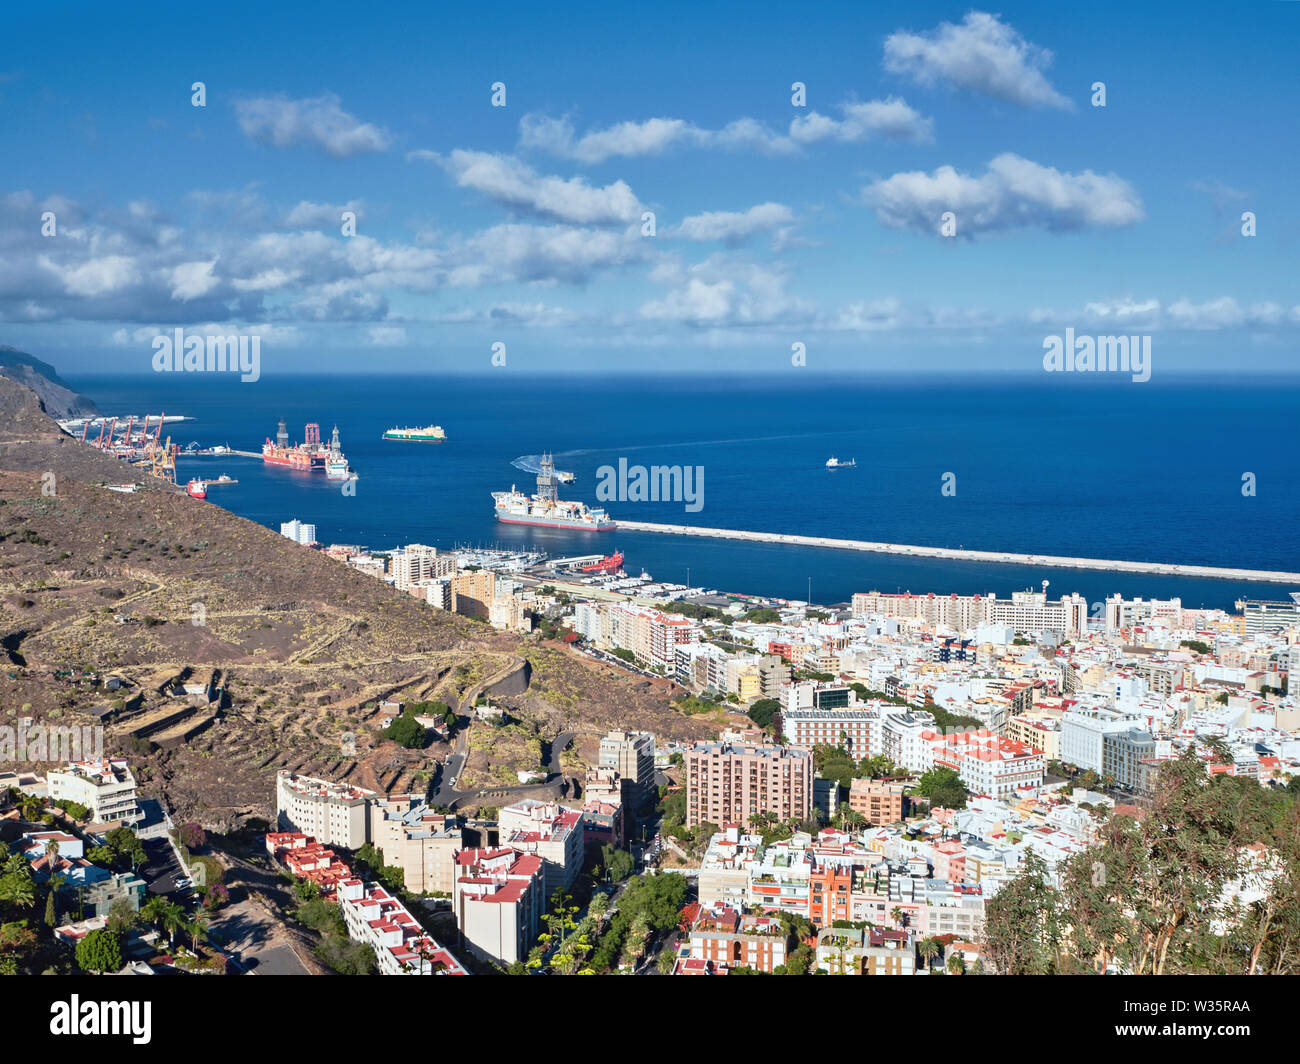 Port entrance of Santa Cruz de Tenerife photographed from high above. Dark blue Atlantic Ocean and sky with white clouds, a partial view of the white - Stock Image